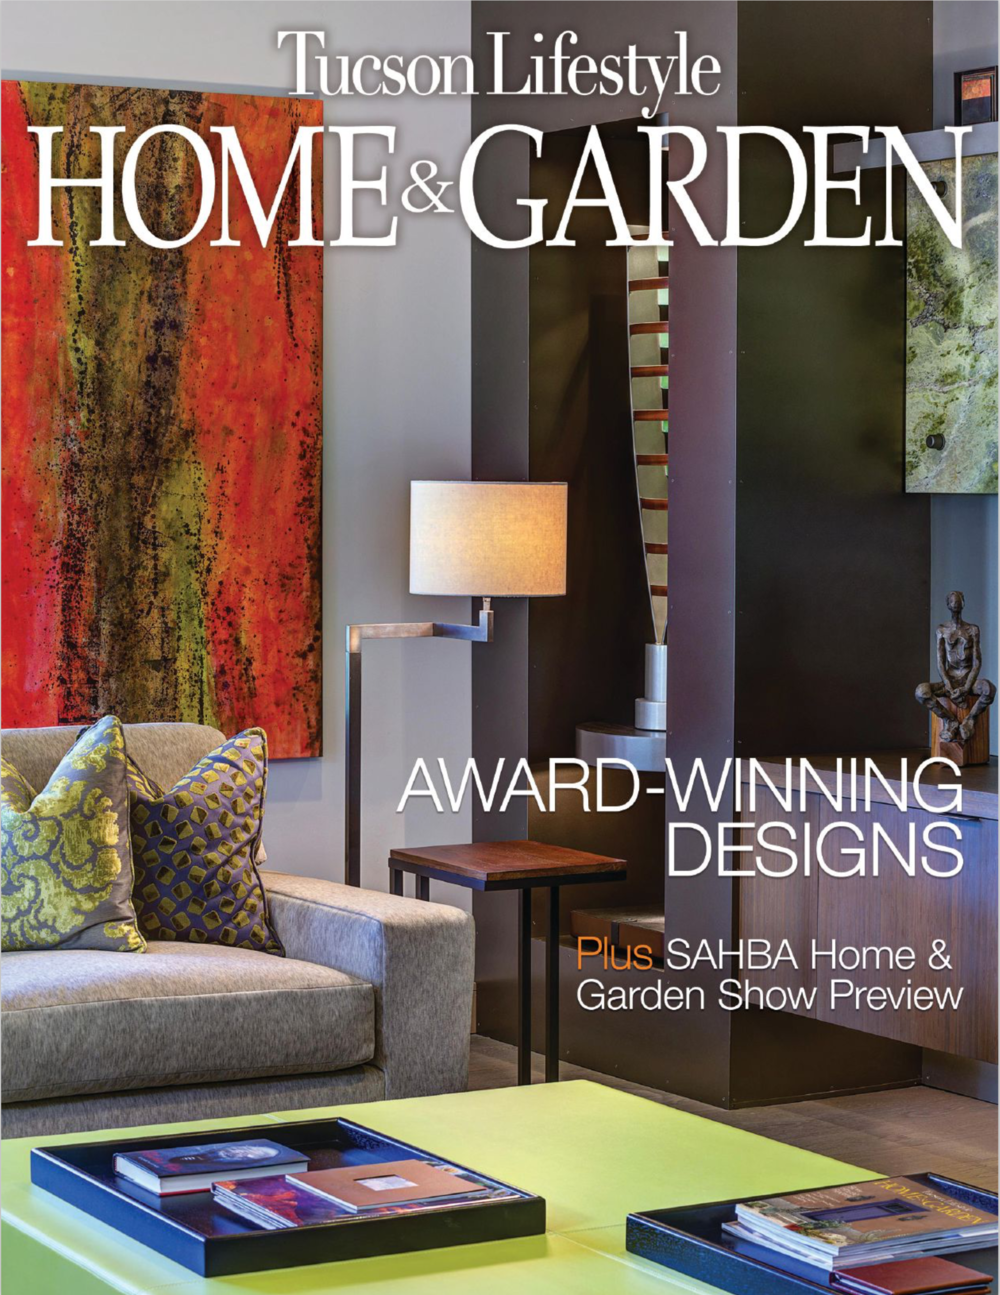 TUCSON LIFESTYLE HOME & GARDEN MAGAZINE Oct. 2015